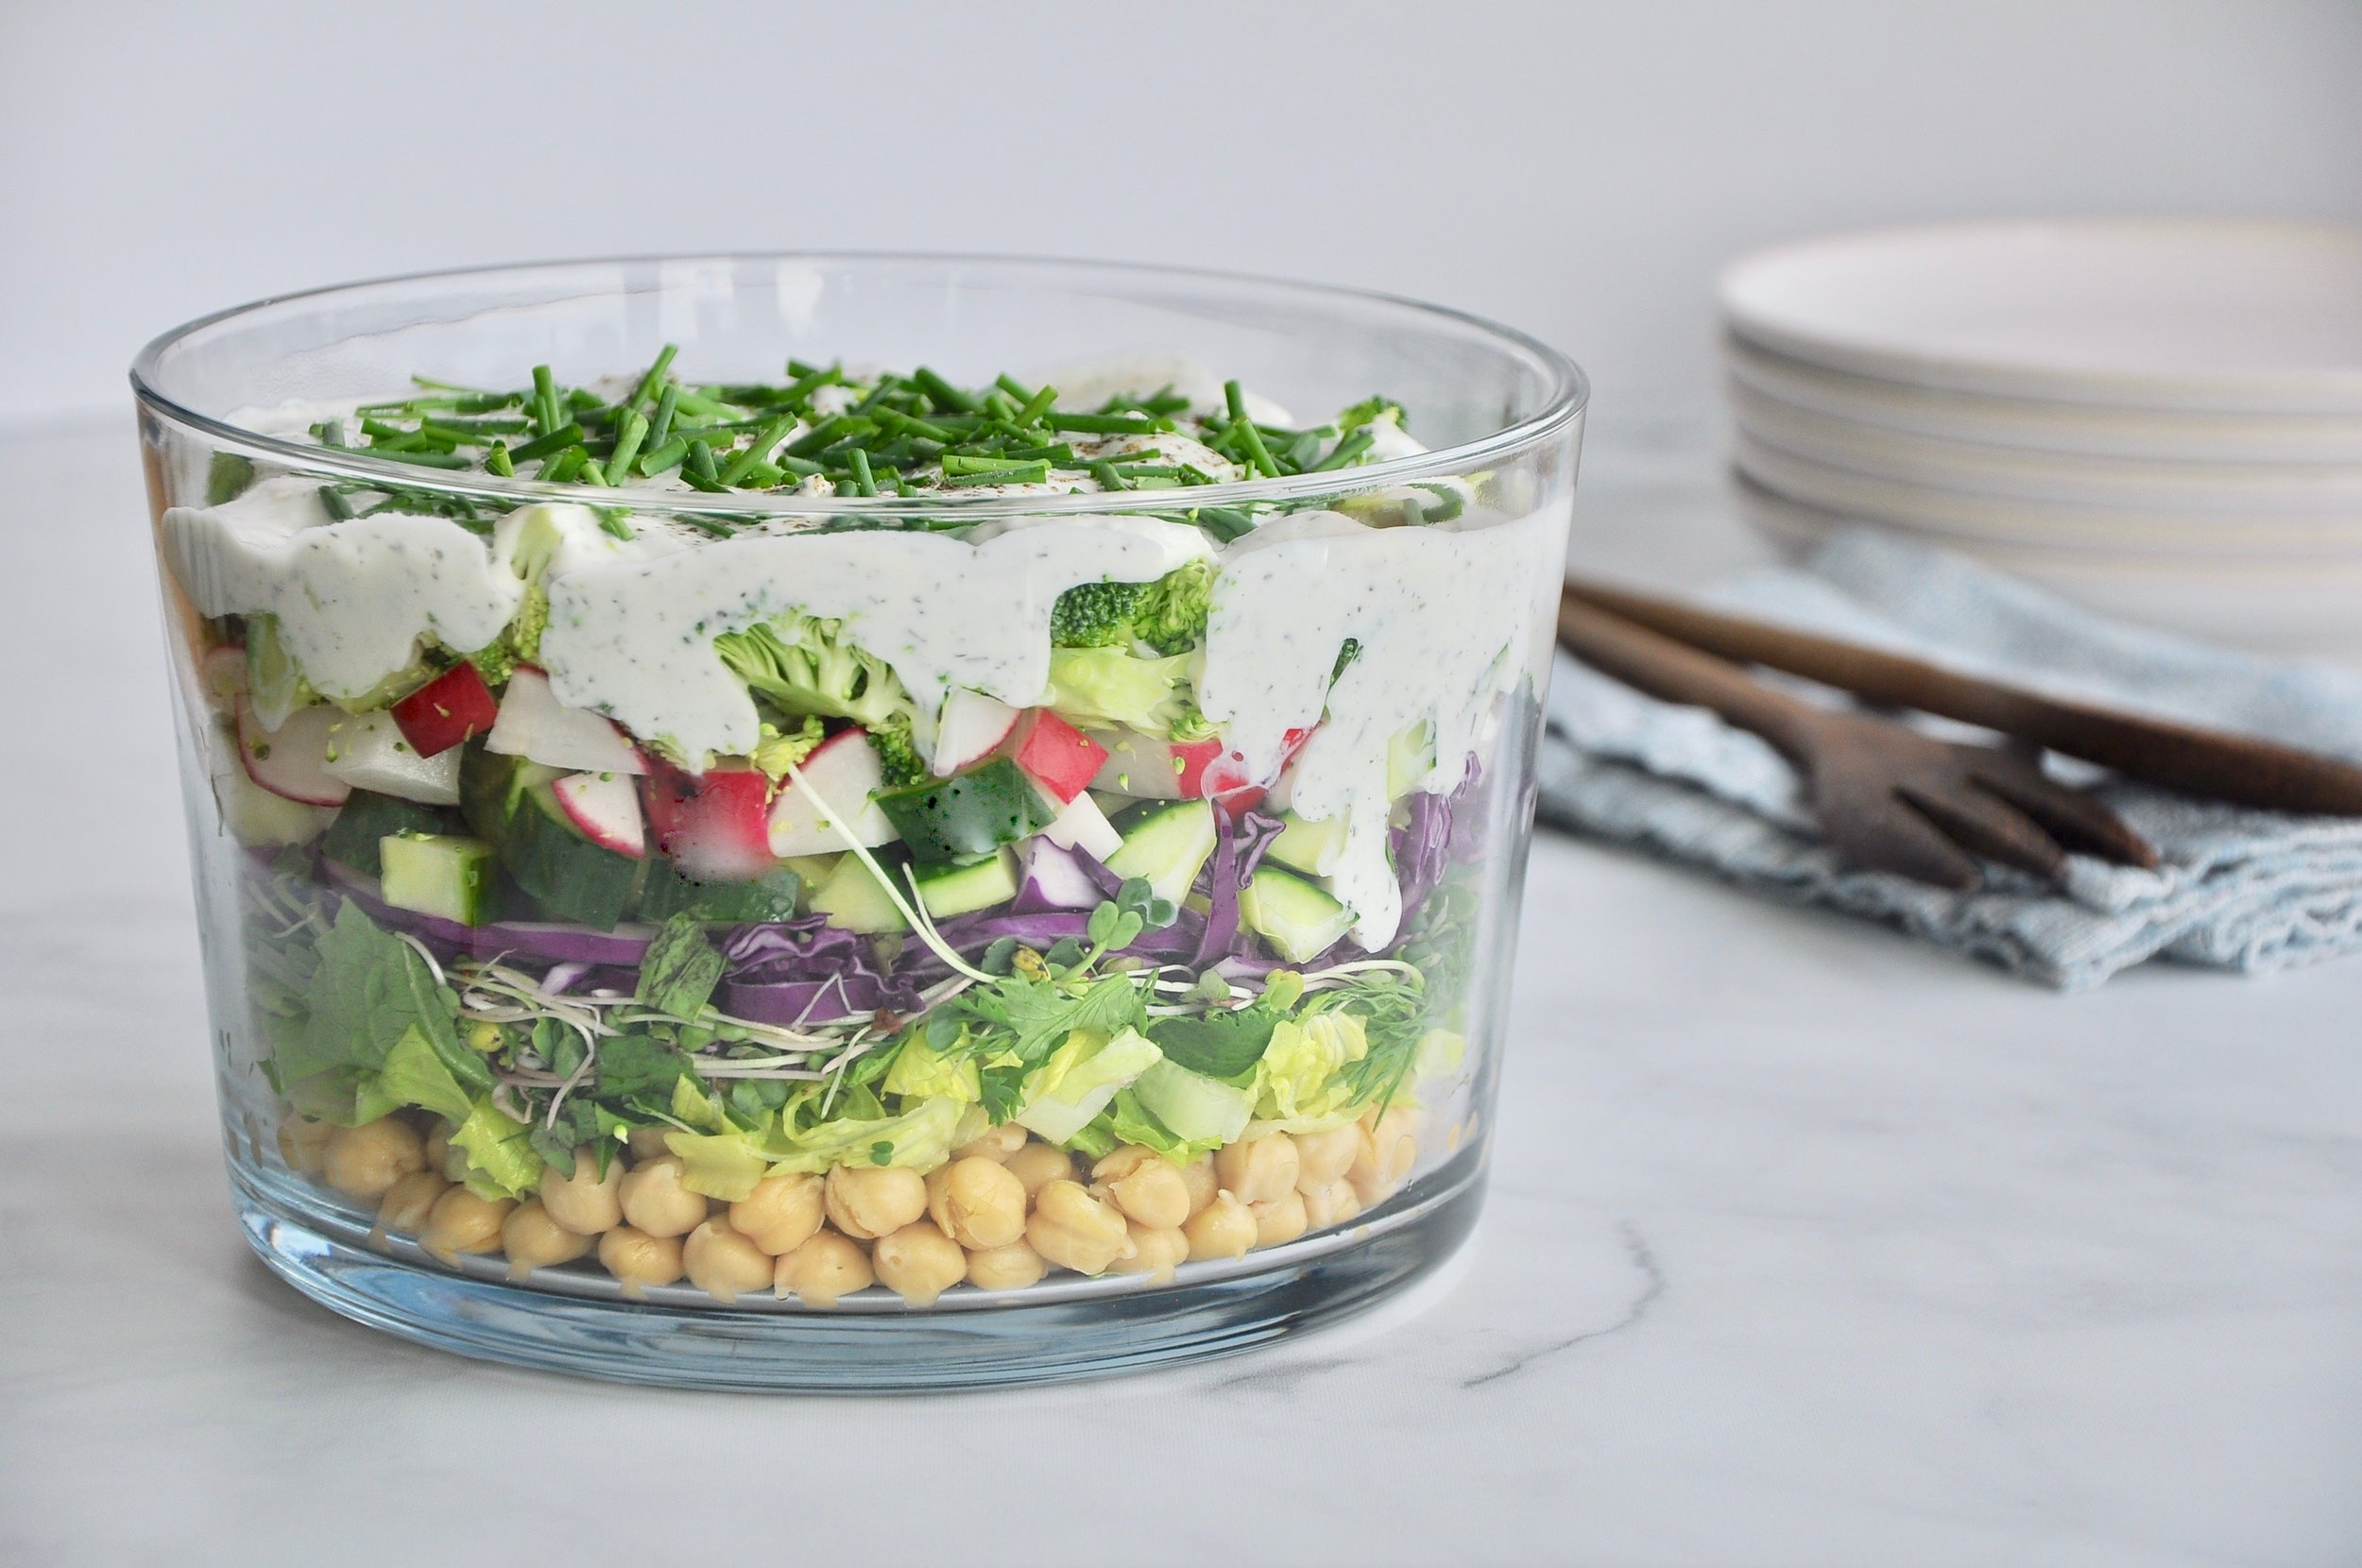 LAYERED PICNIC SALAD WITH YOGURT RANCH DRESSING  Private Consulting Client